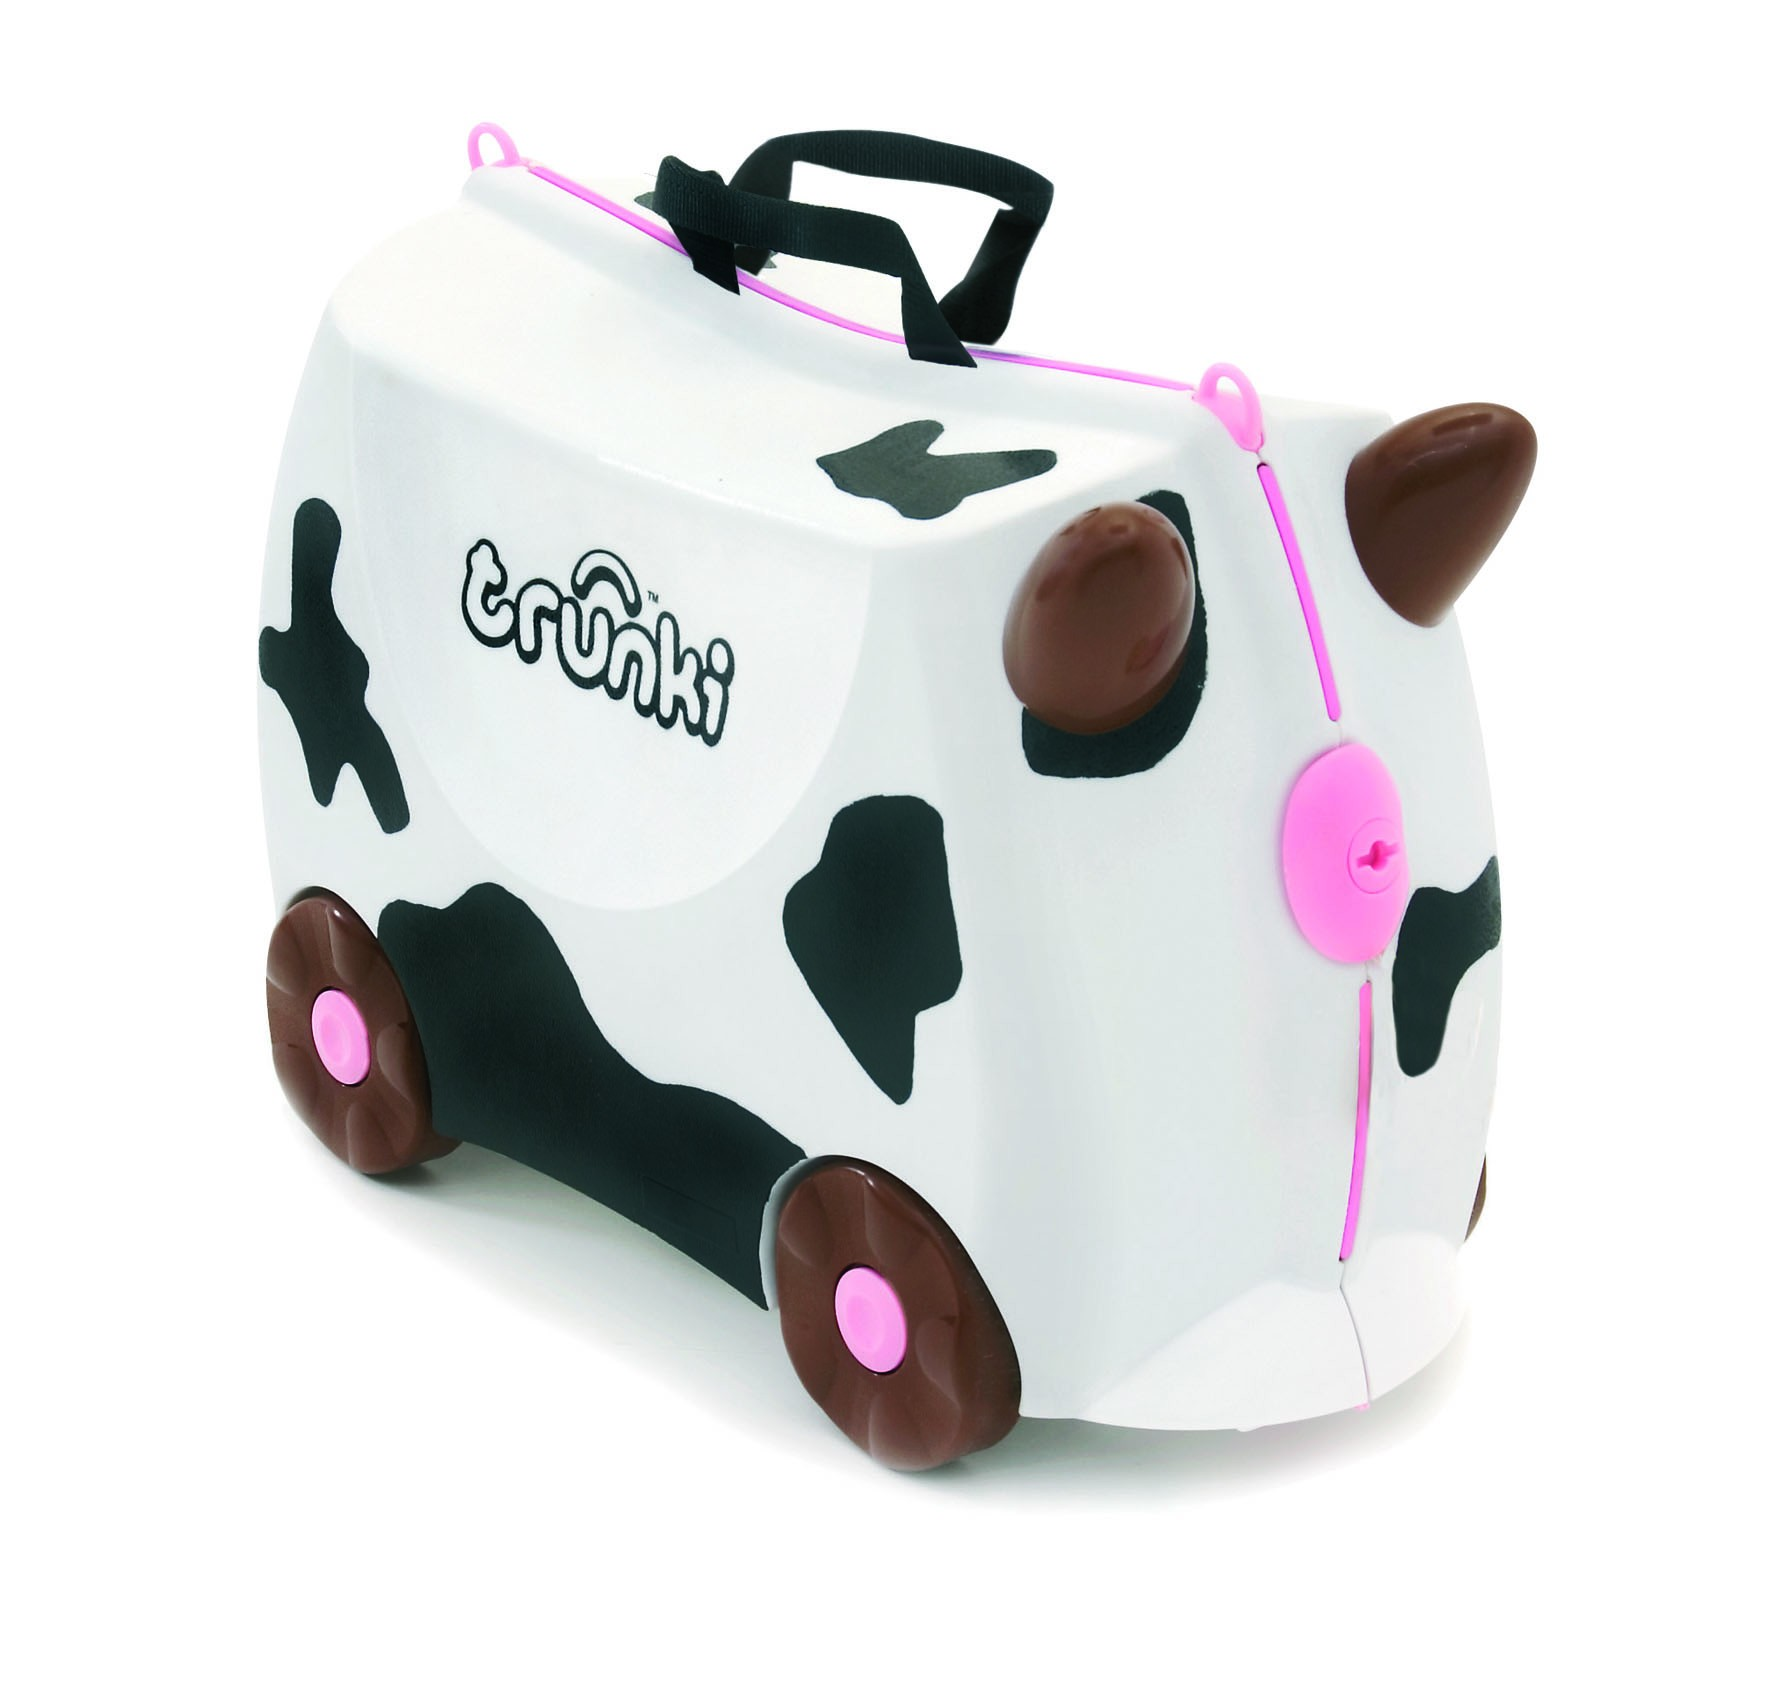 Valise Frieda La Vache de Trunki-314